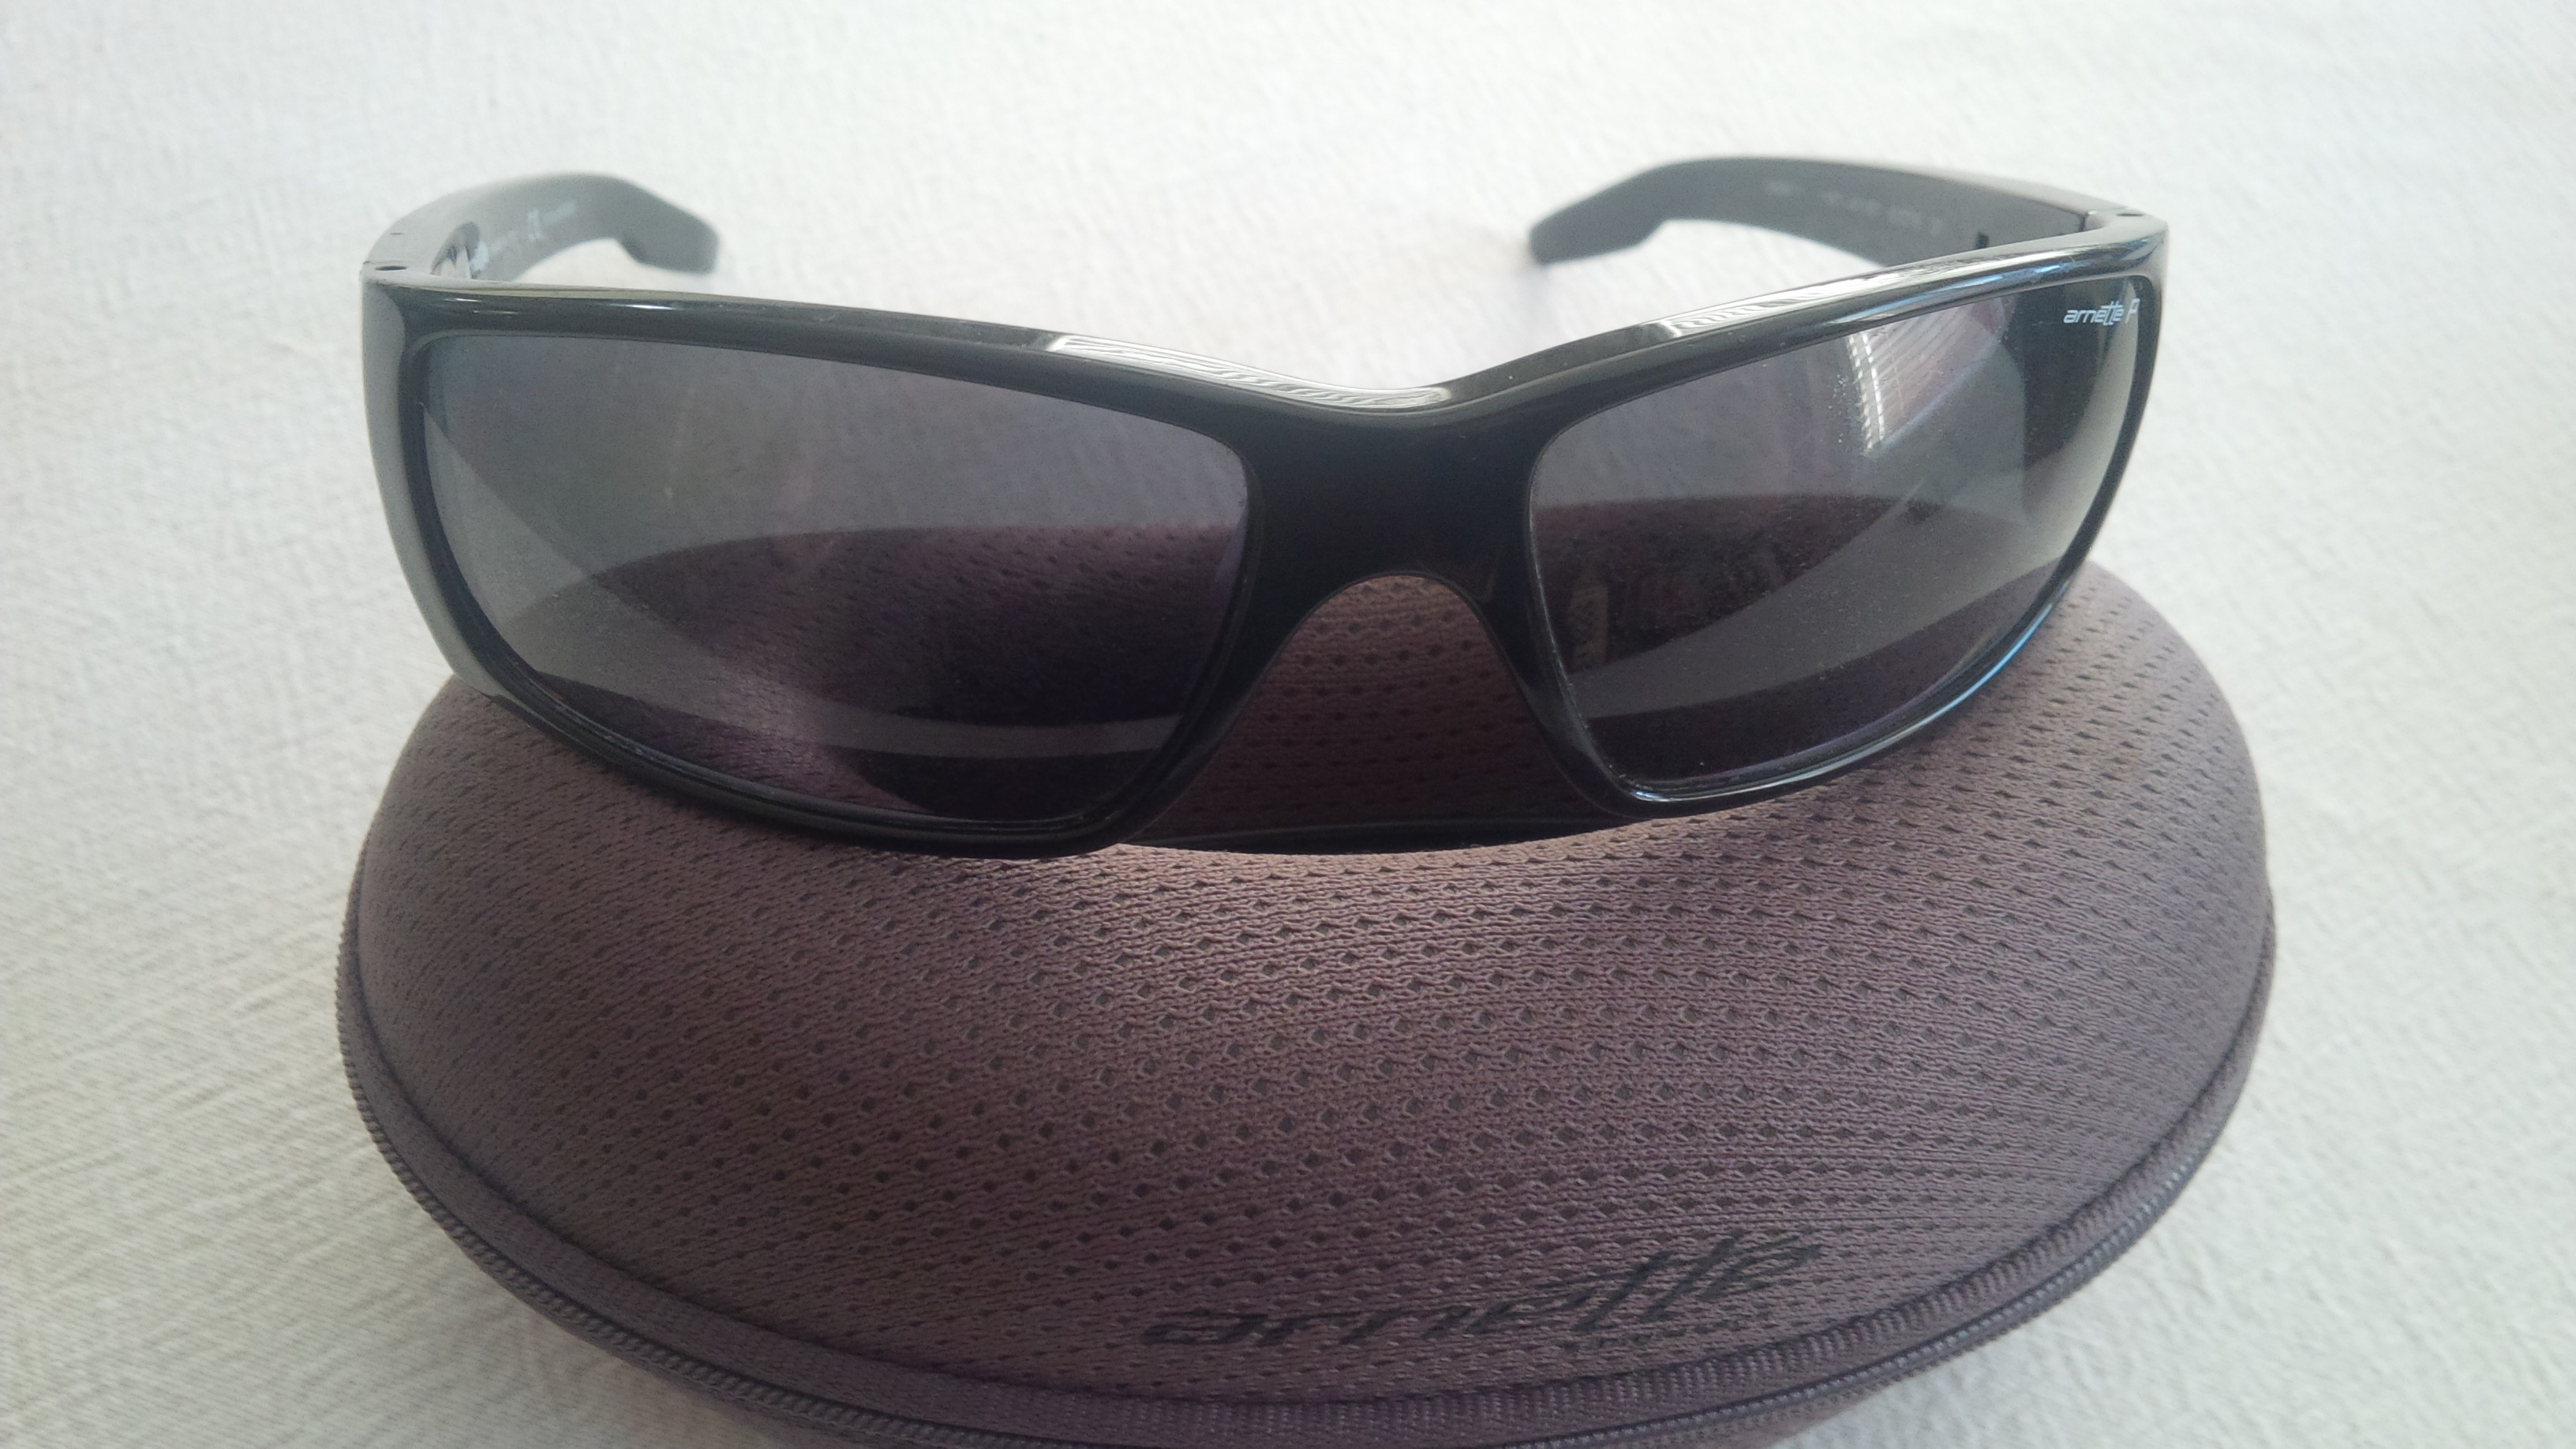 One Bearded Review – Arnette Sunglasses: they were great ...